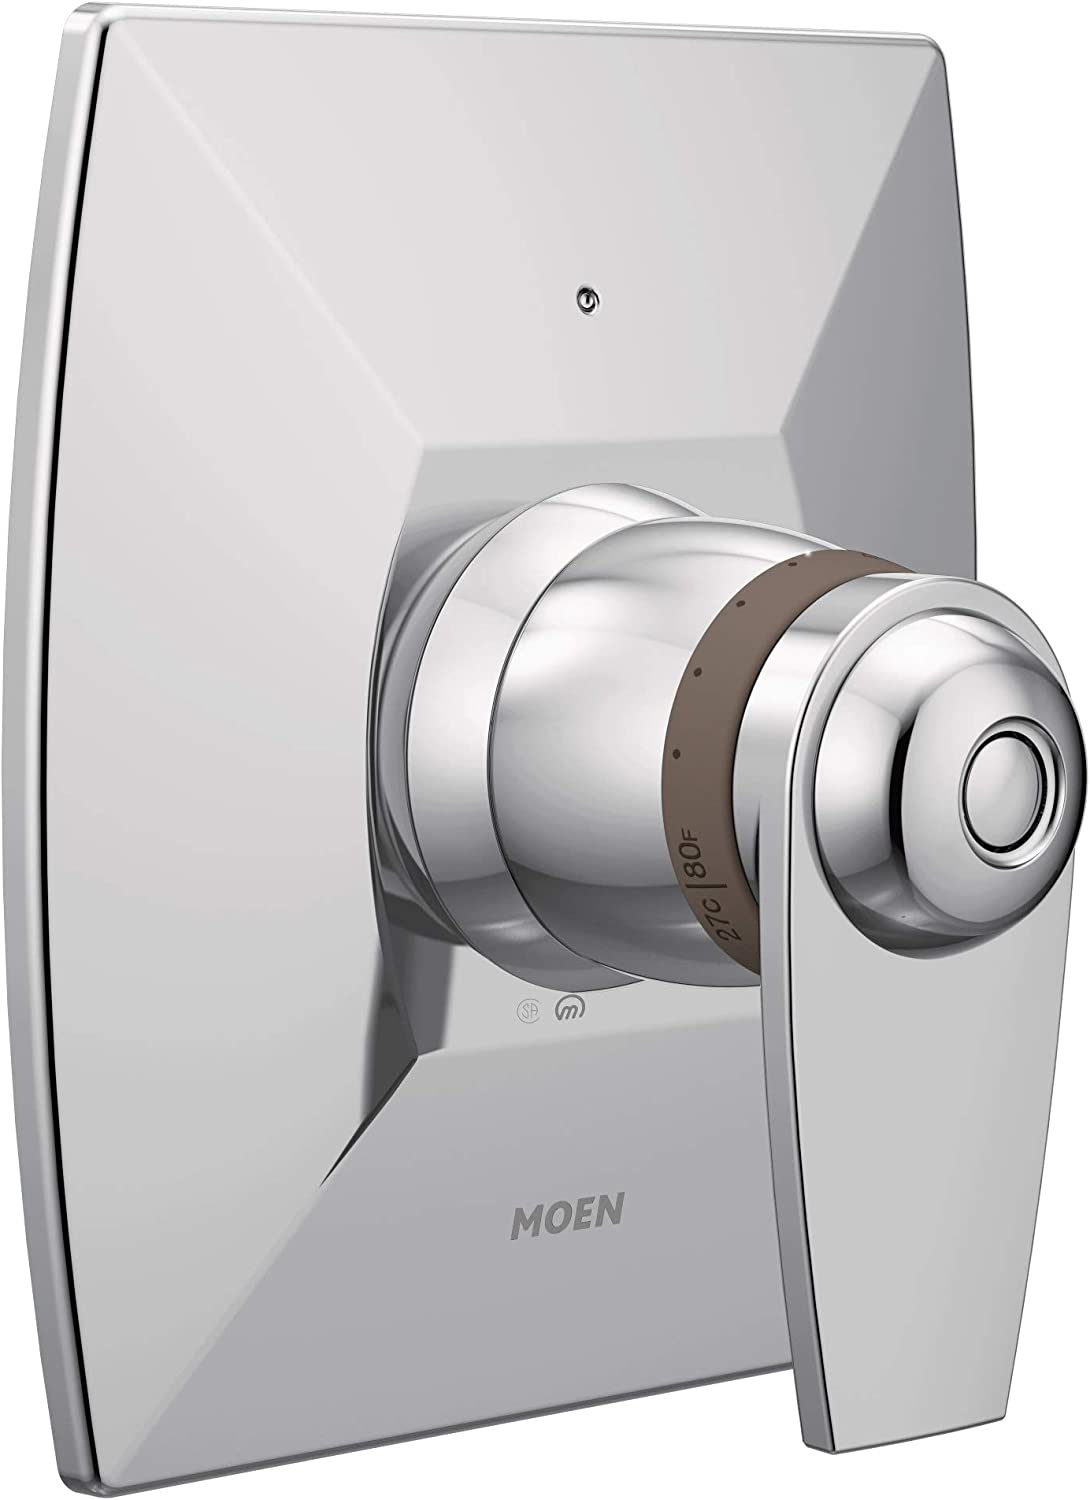 Moen TS9711 Via ExactTemp Thermostatic Trim Kit Max 69% OFF Required Valve All items free shipping